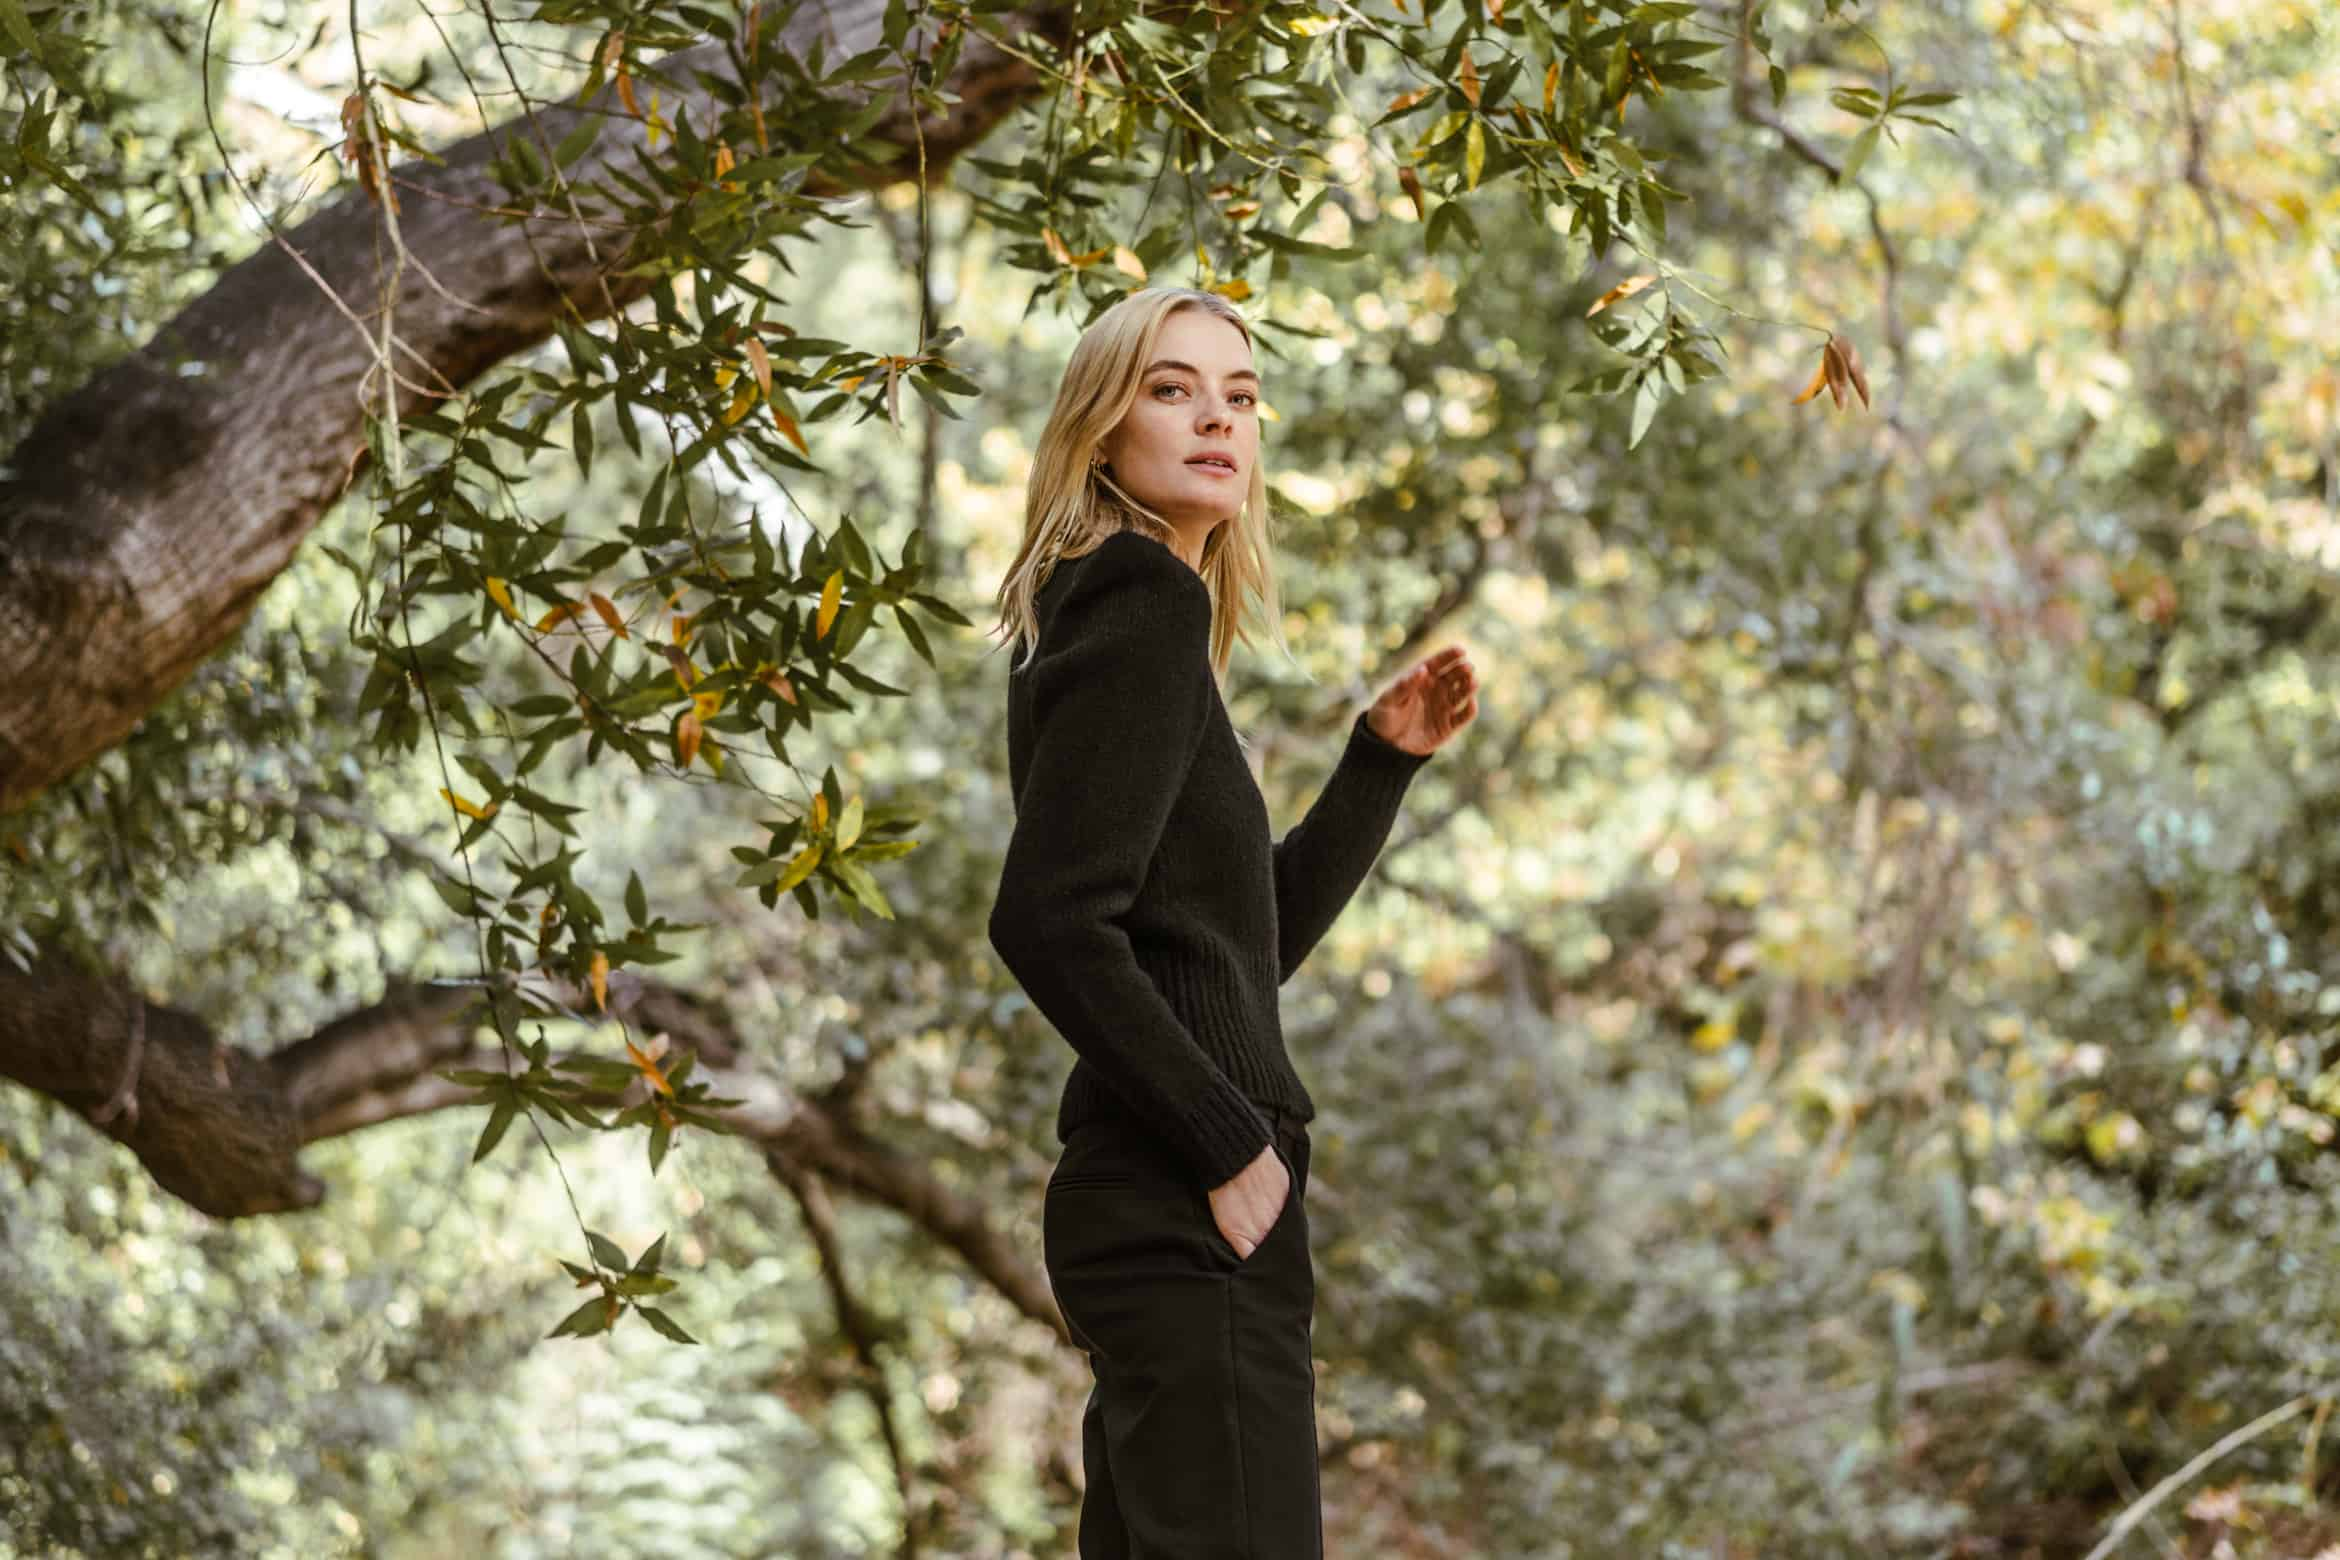 st-roche-sustainable-luxury-clothing-20